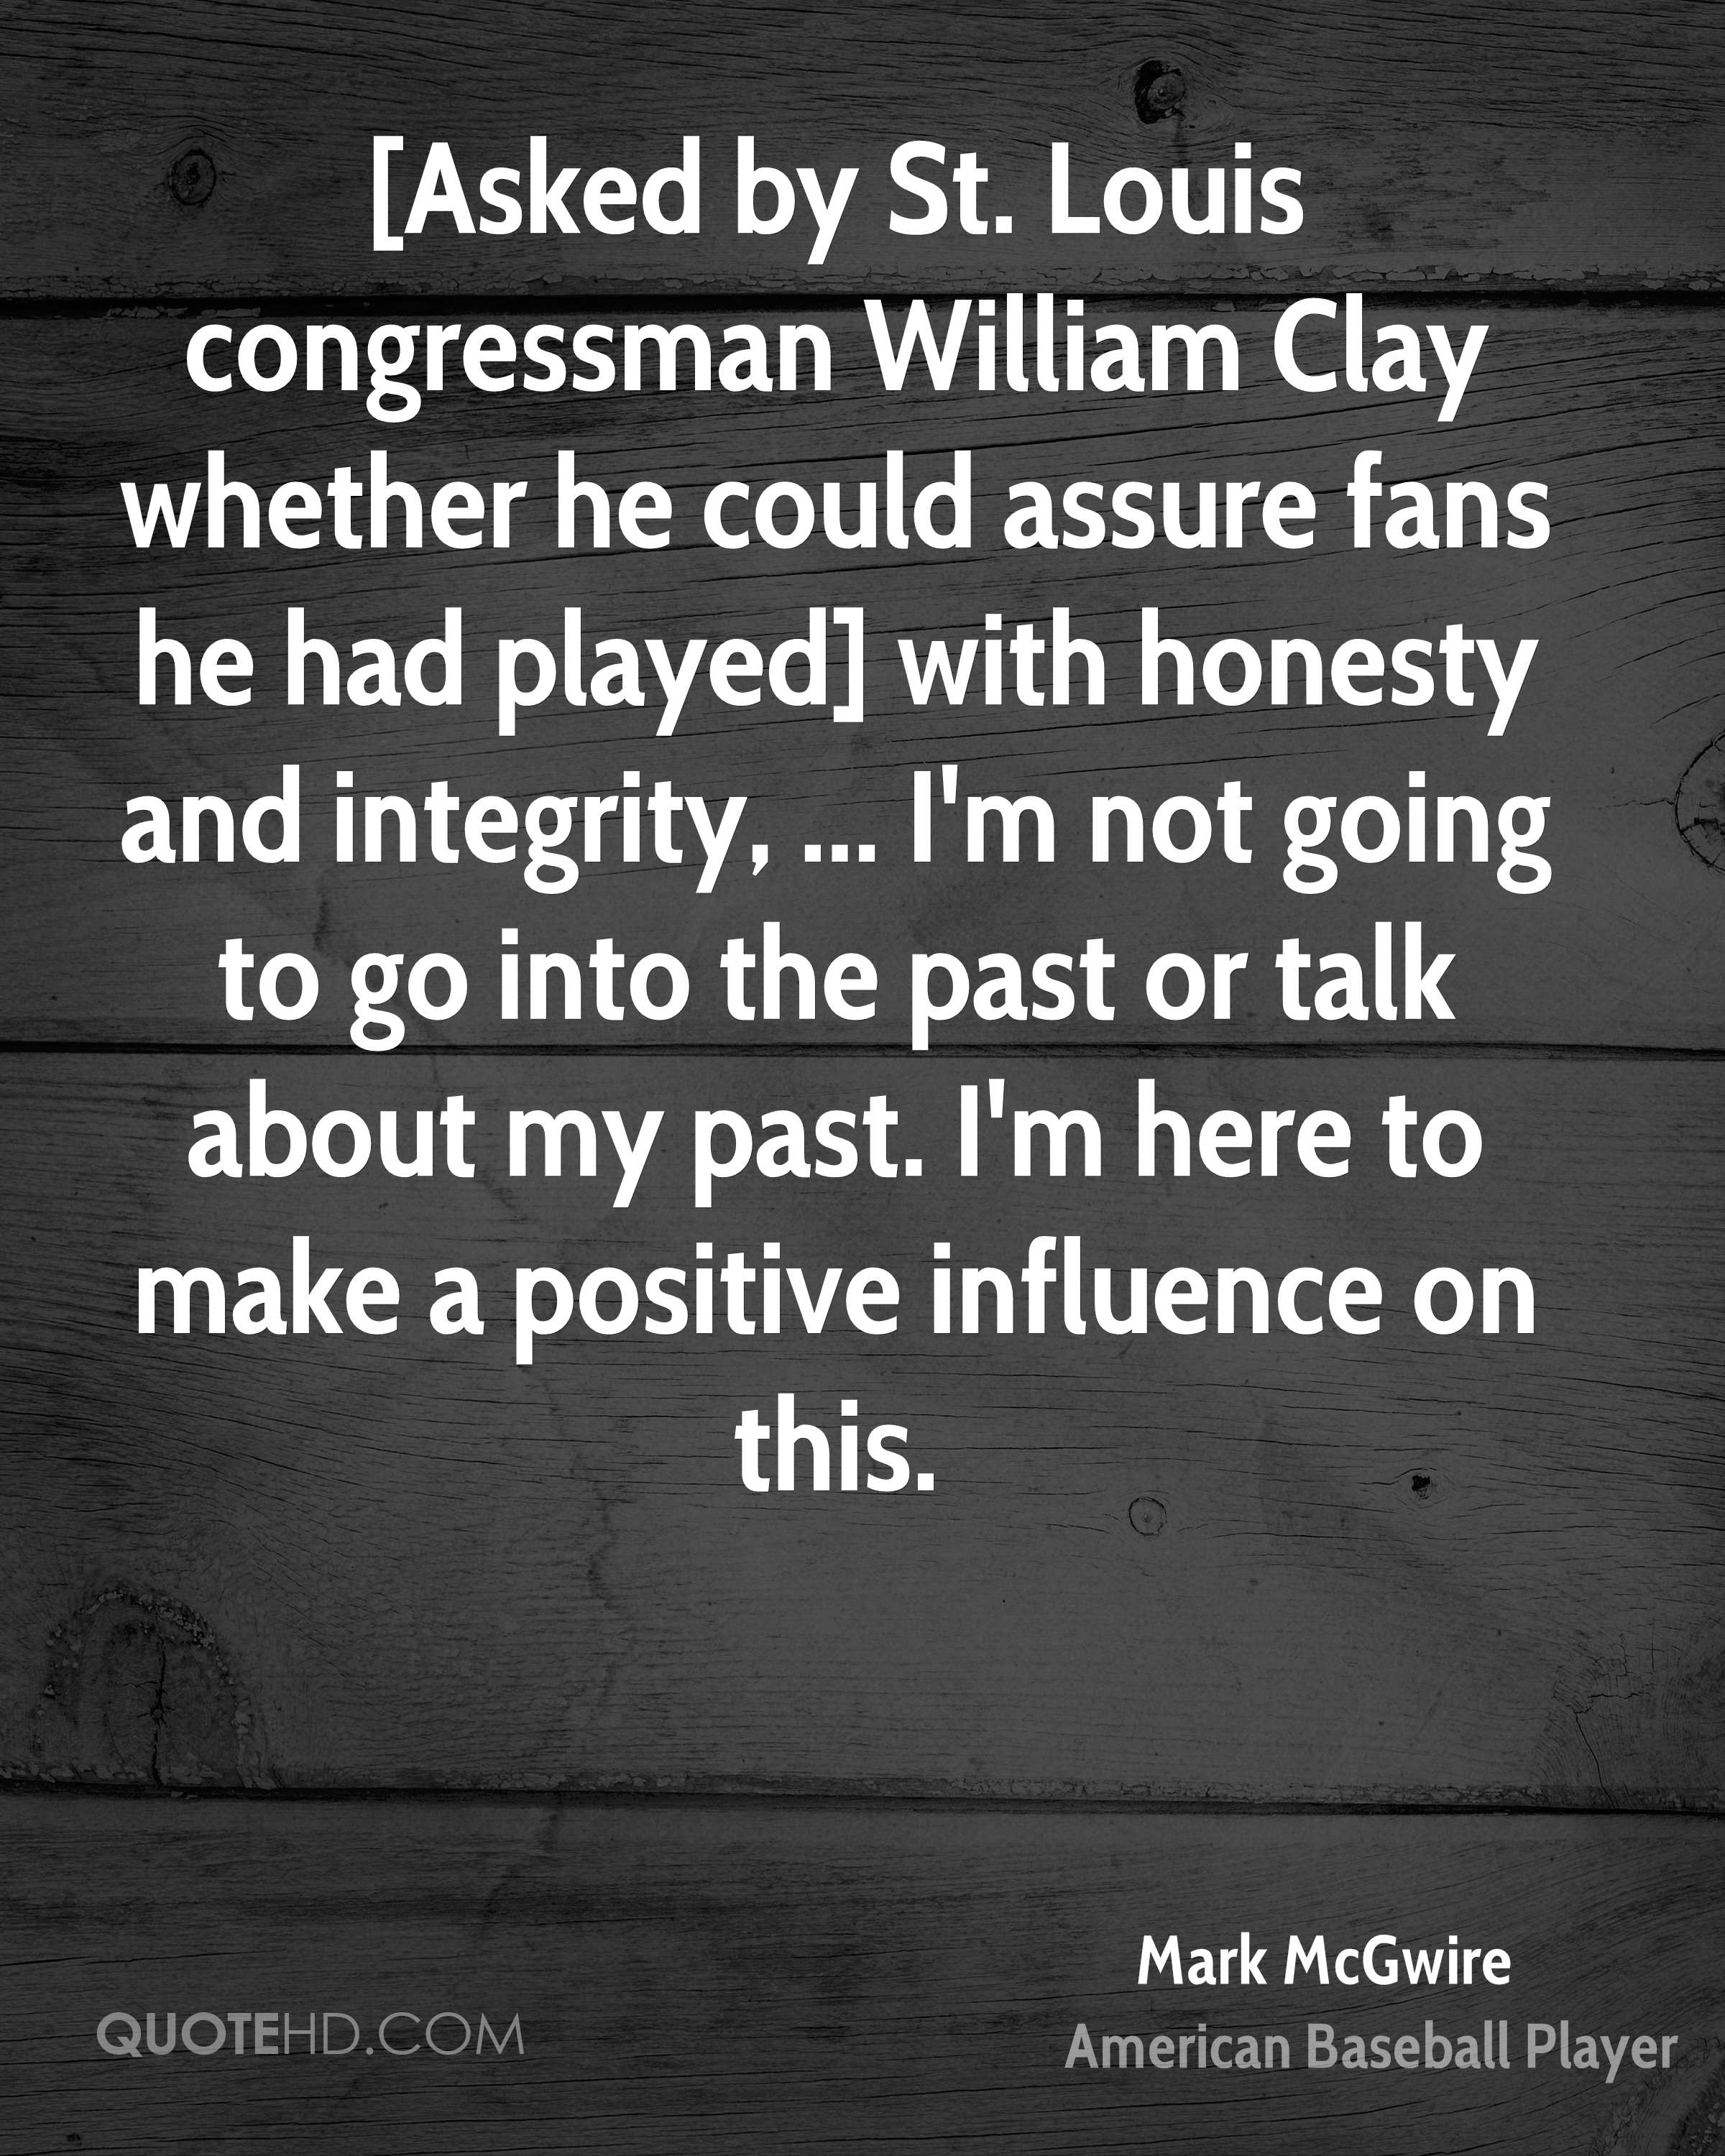 [Asked by St. Louis congressman William Clay whether he could assure fans he had played] with honesty and integrity, ... I'm not going to go into the past or talk about my past. I'm here to make a positive influence on this.